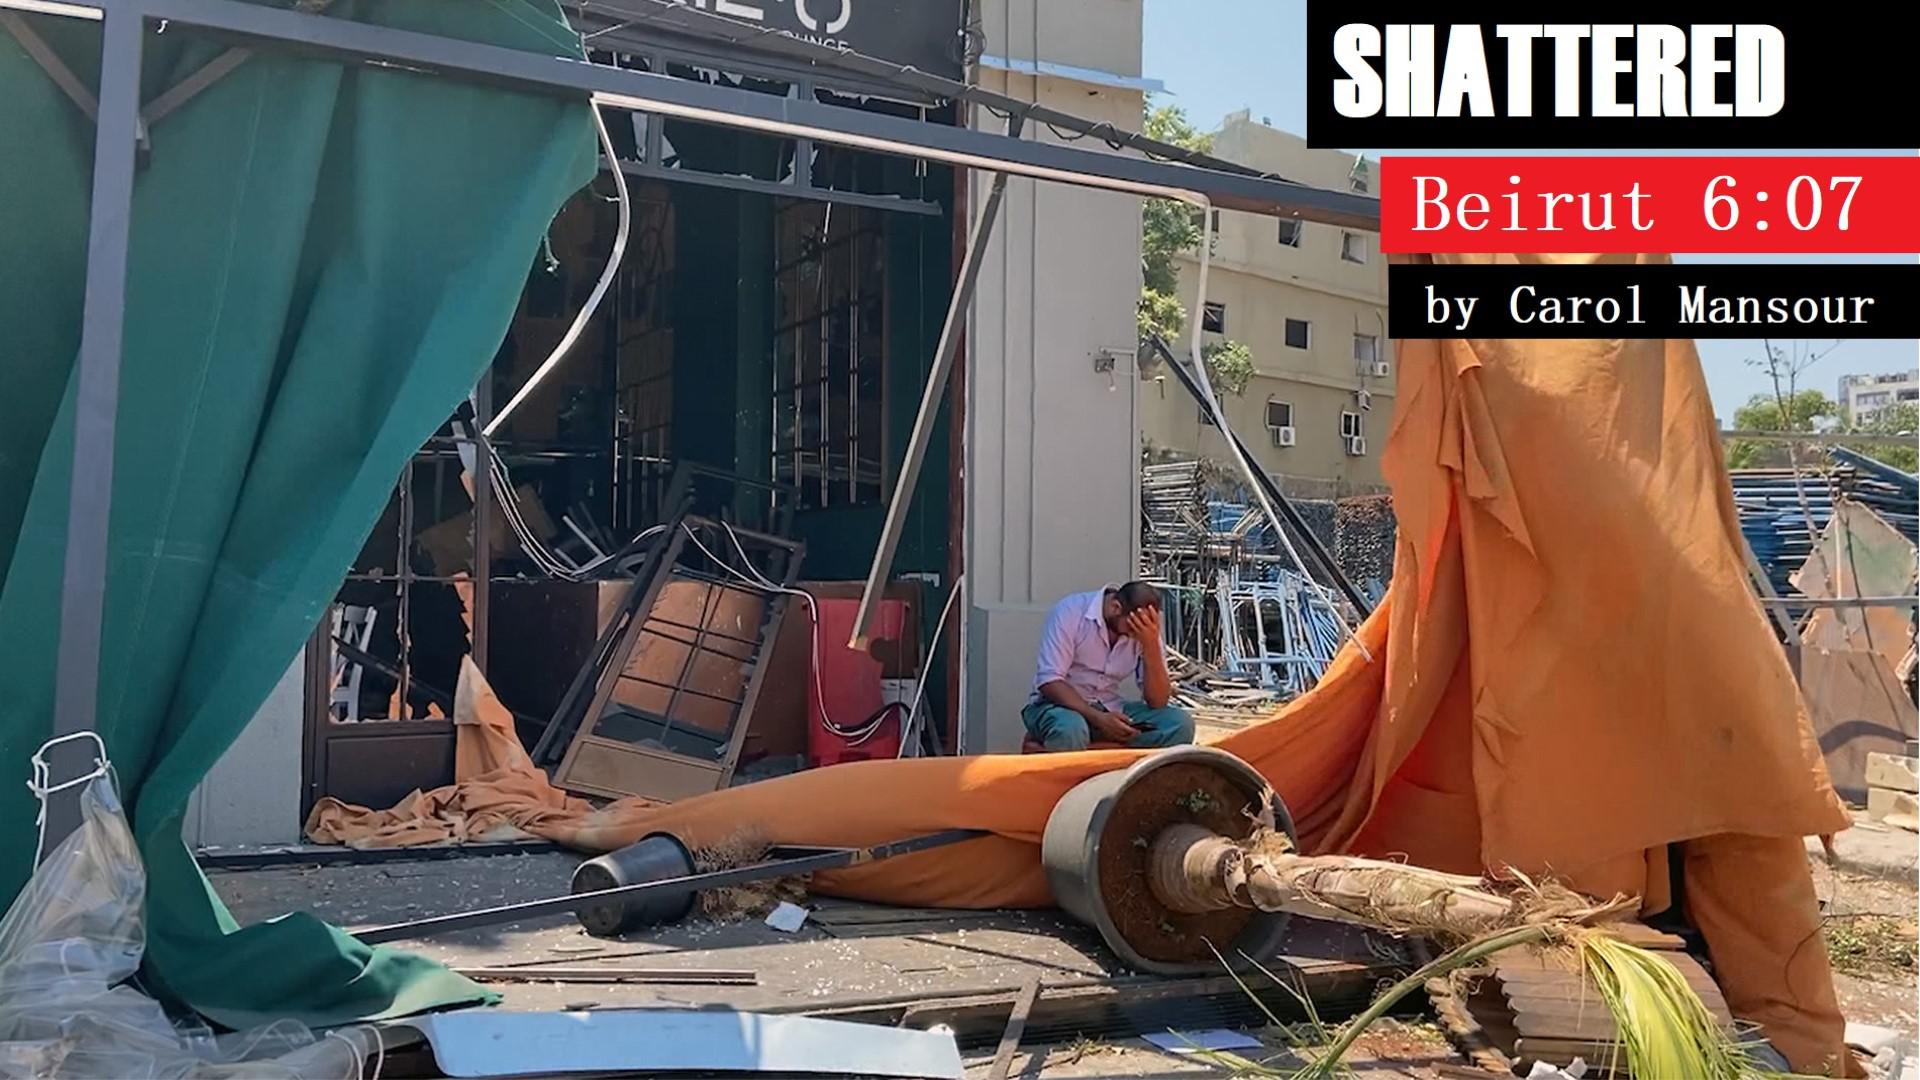 Shattered: Beirut 6.07